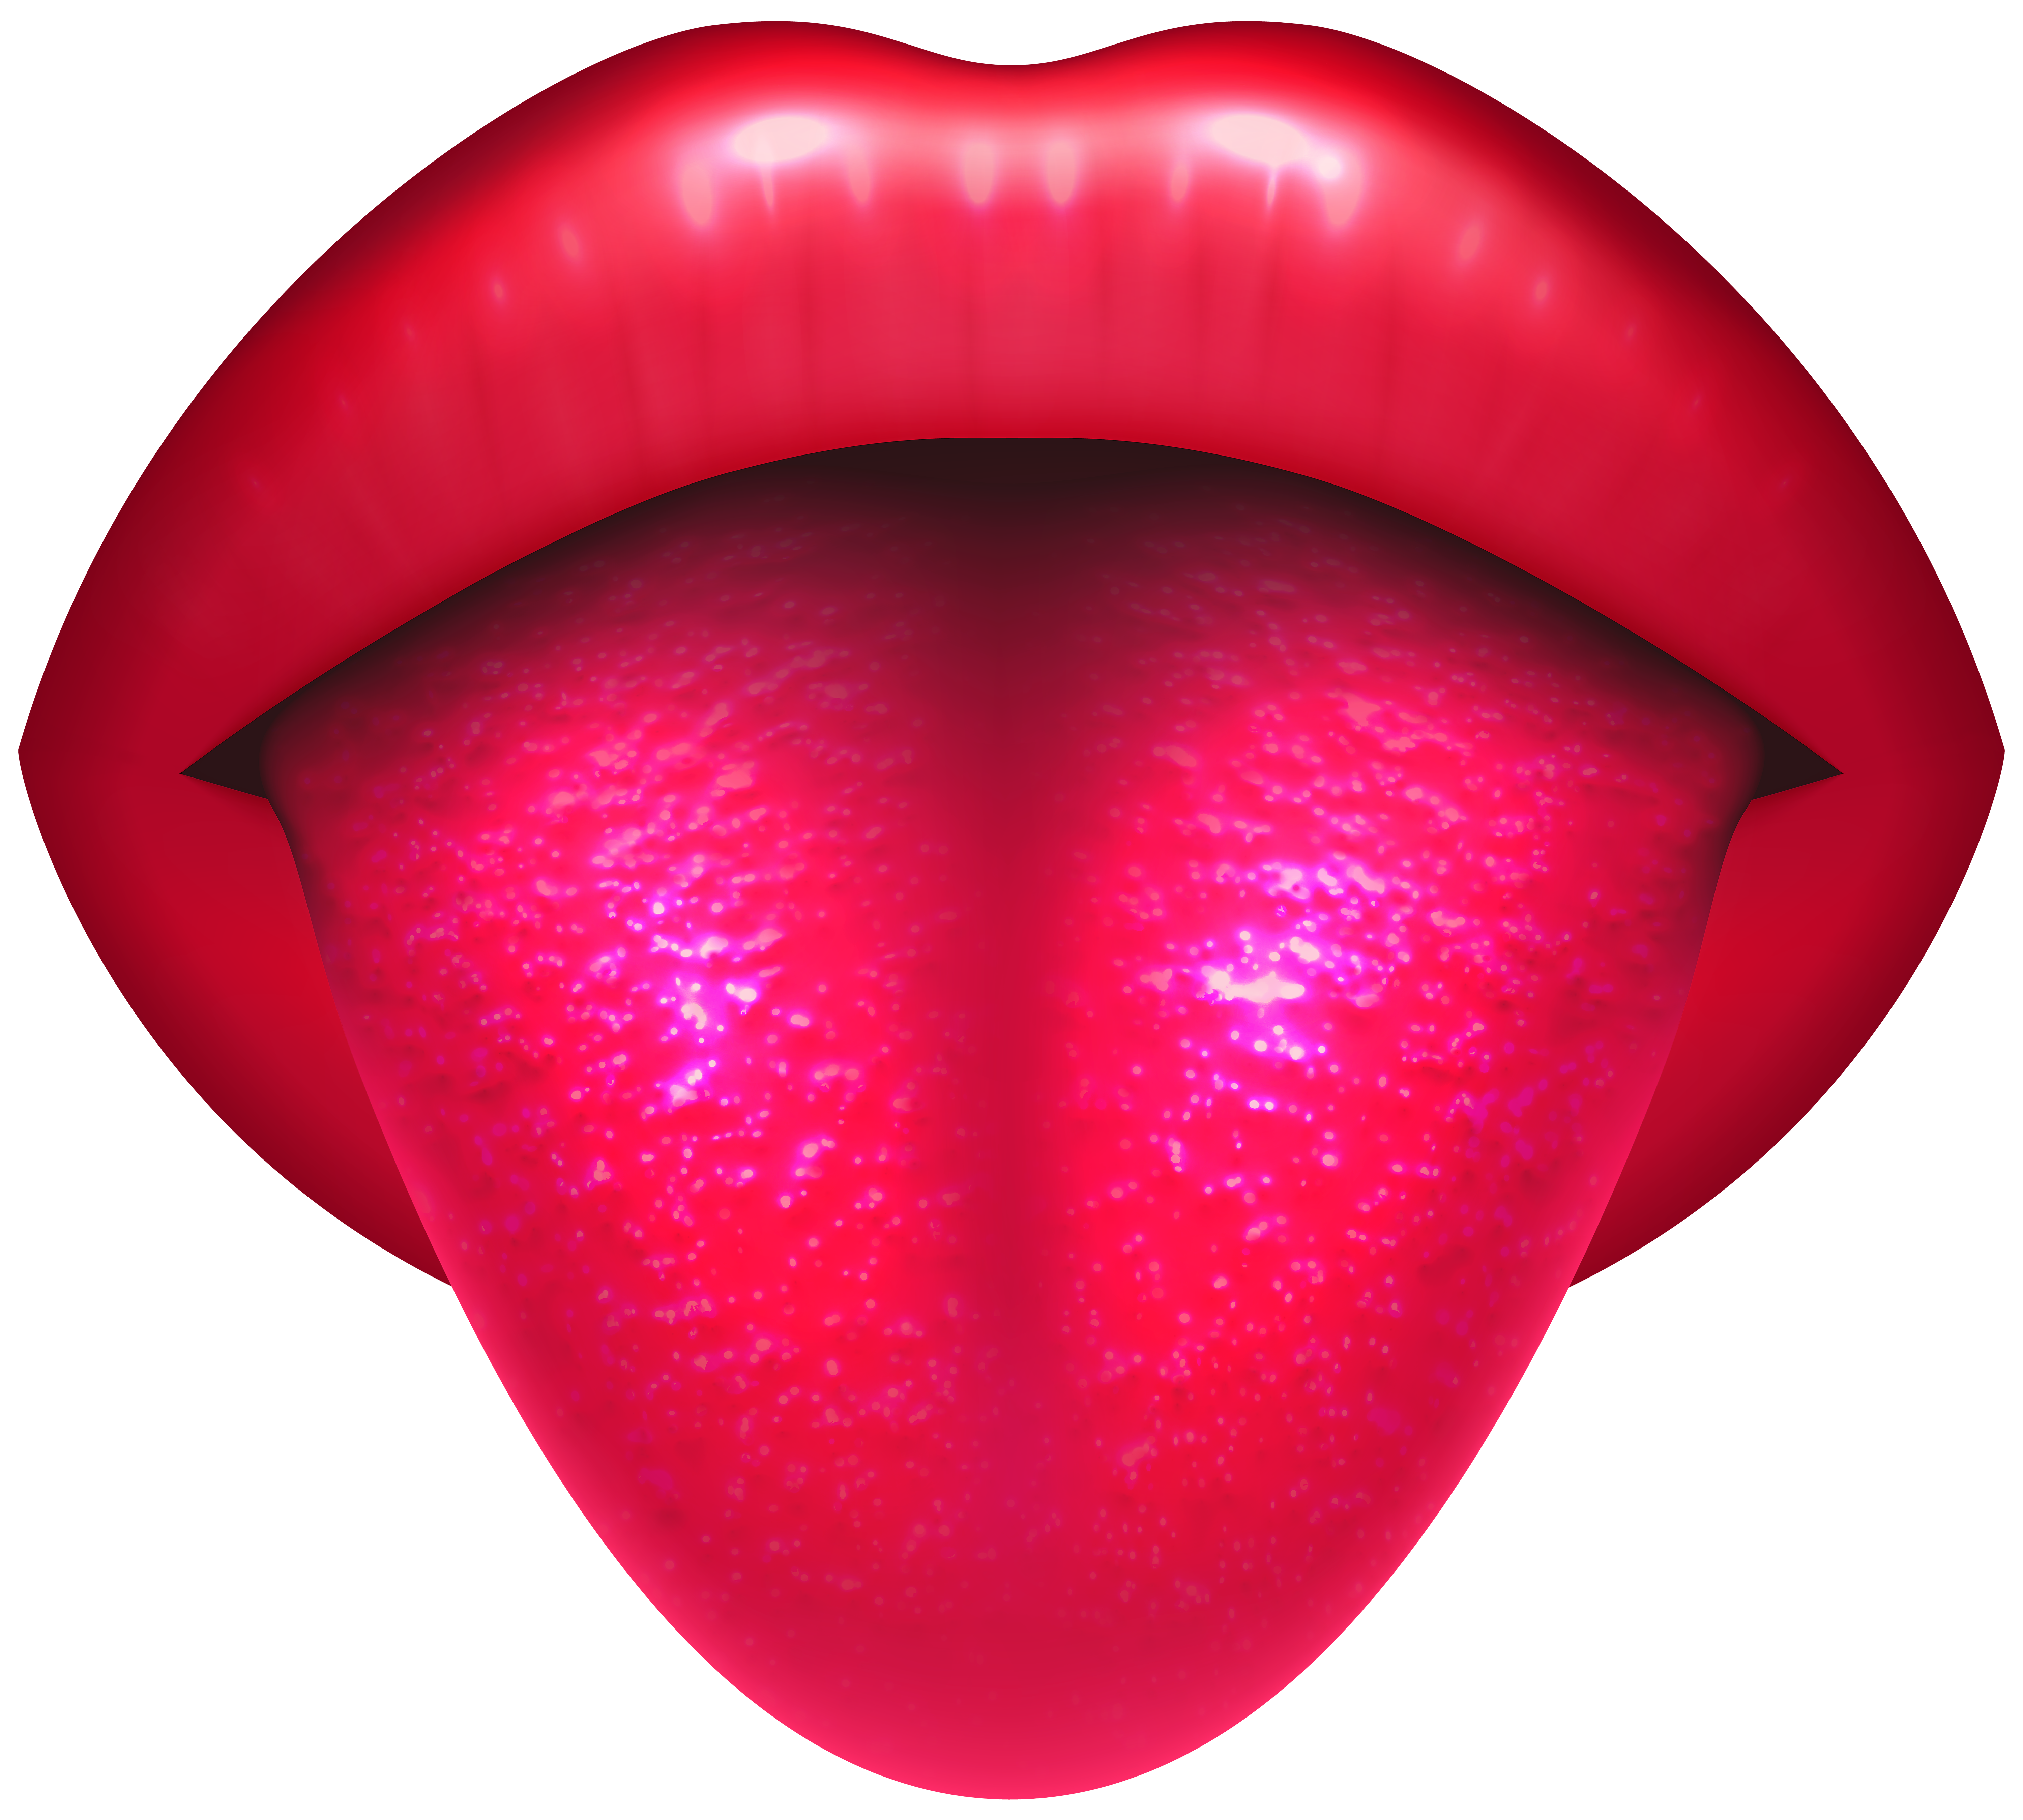 Lips clipart human mouth. With protruding tongue png